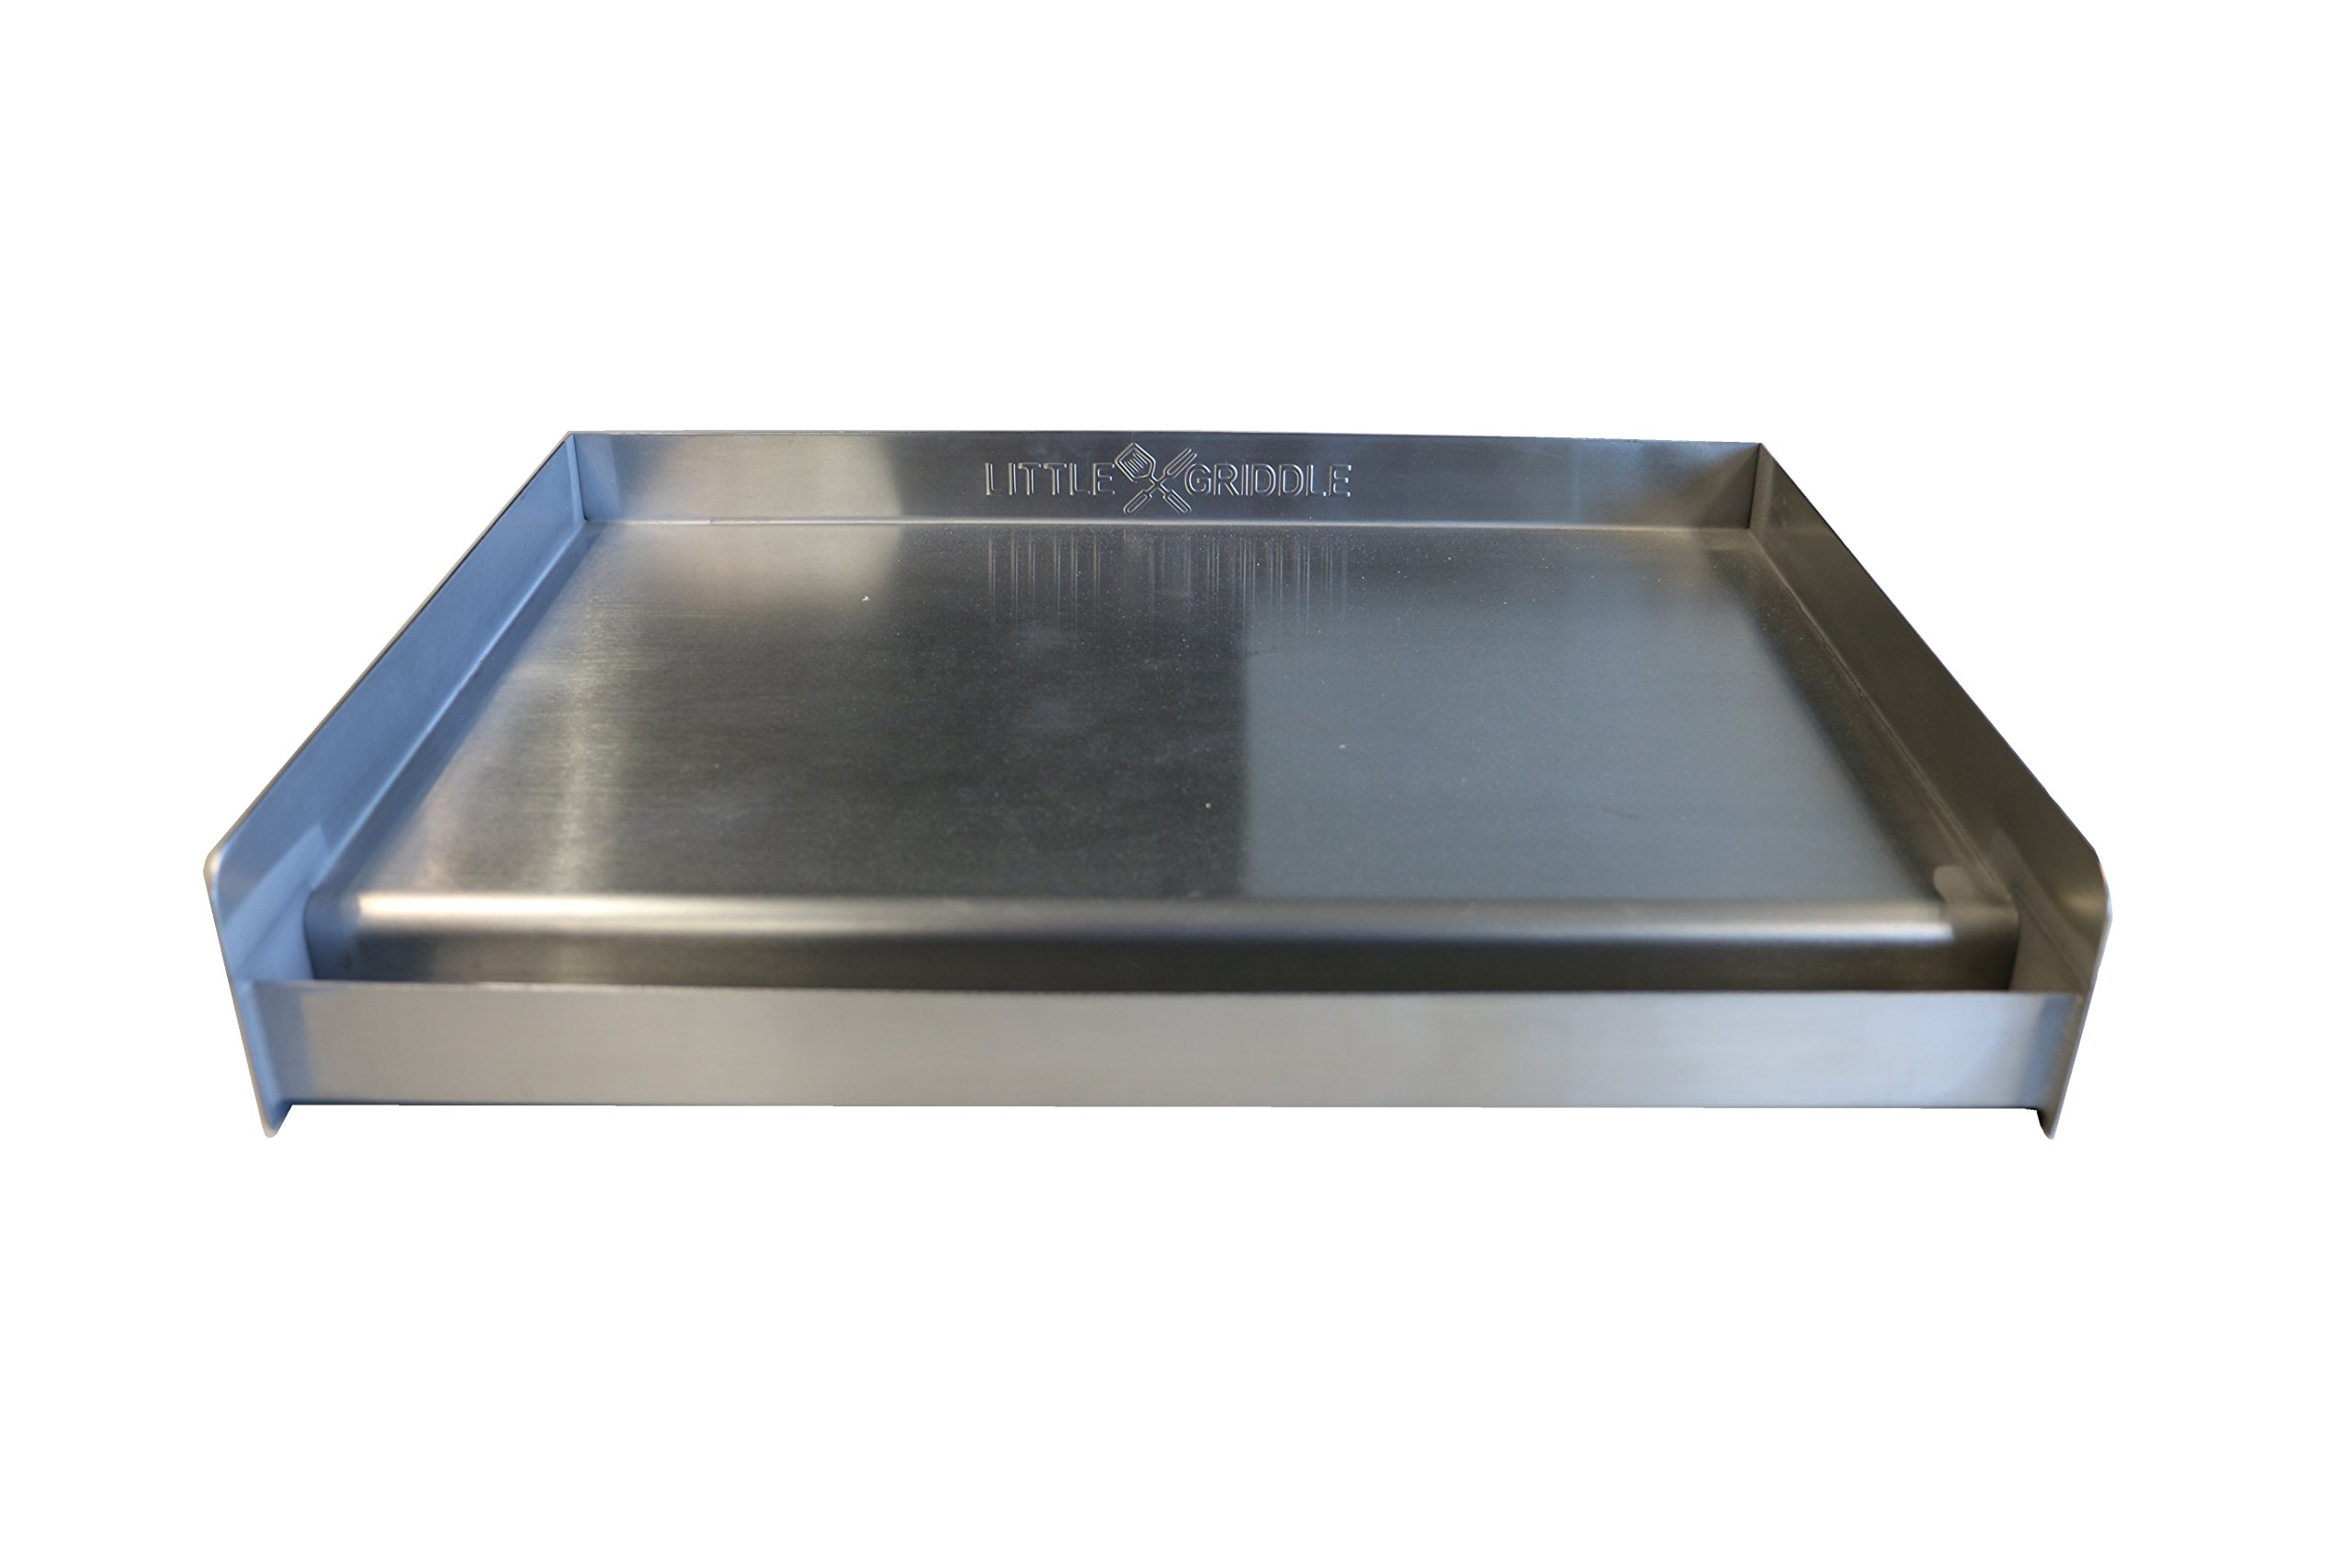 Little Griddle SQ180 Universal Griddle for BBQ Grills, Stainless (Formerly the Sizzle-Q) by Little Griddle (Image #1)